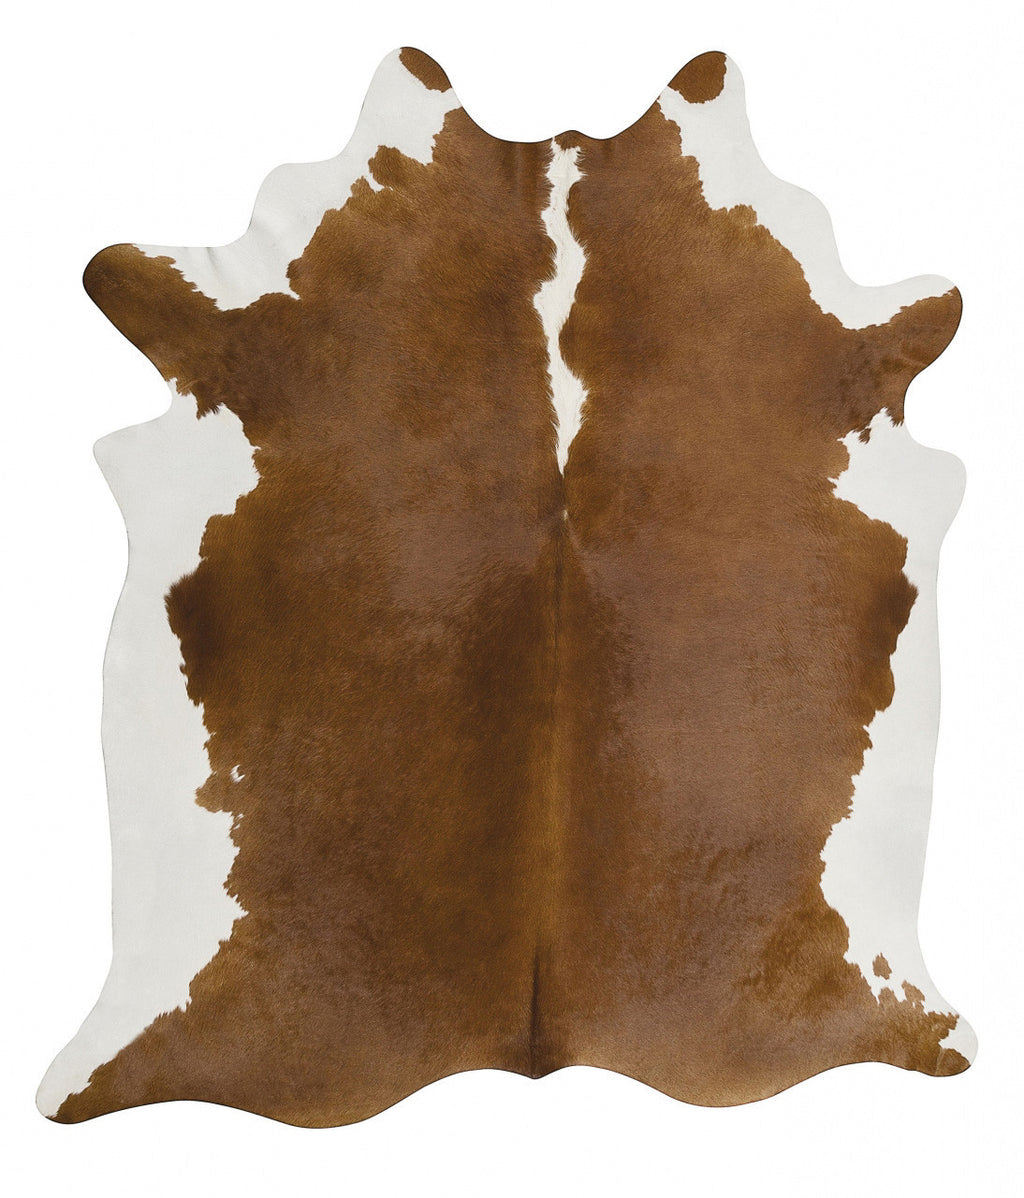 Exquisite Natural Cow Hide Hereford - aladdinrugs - 2